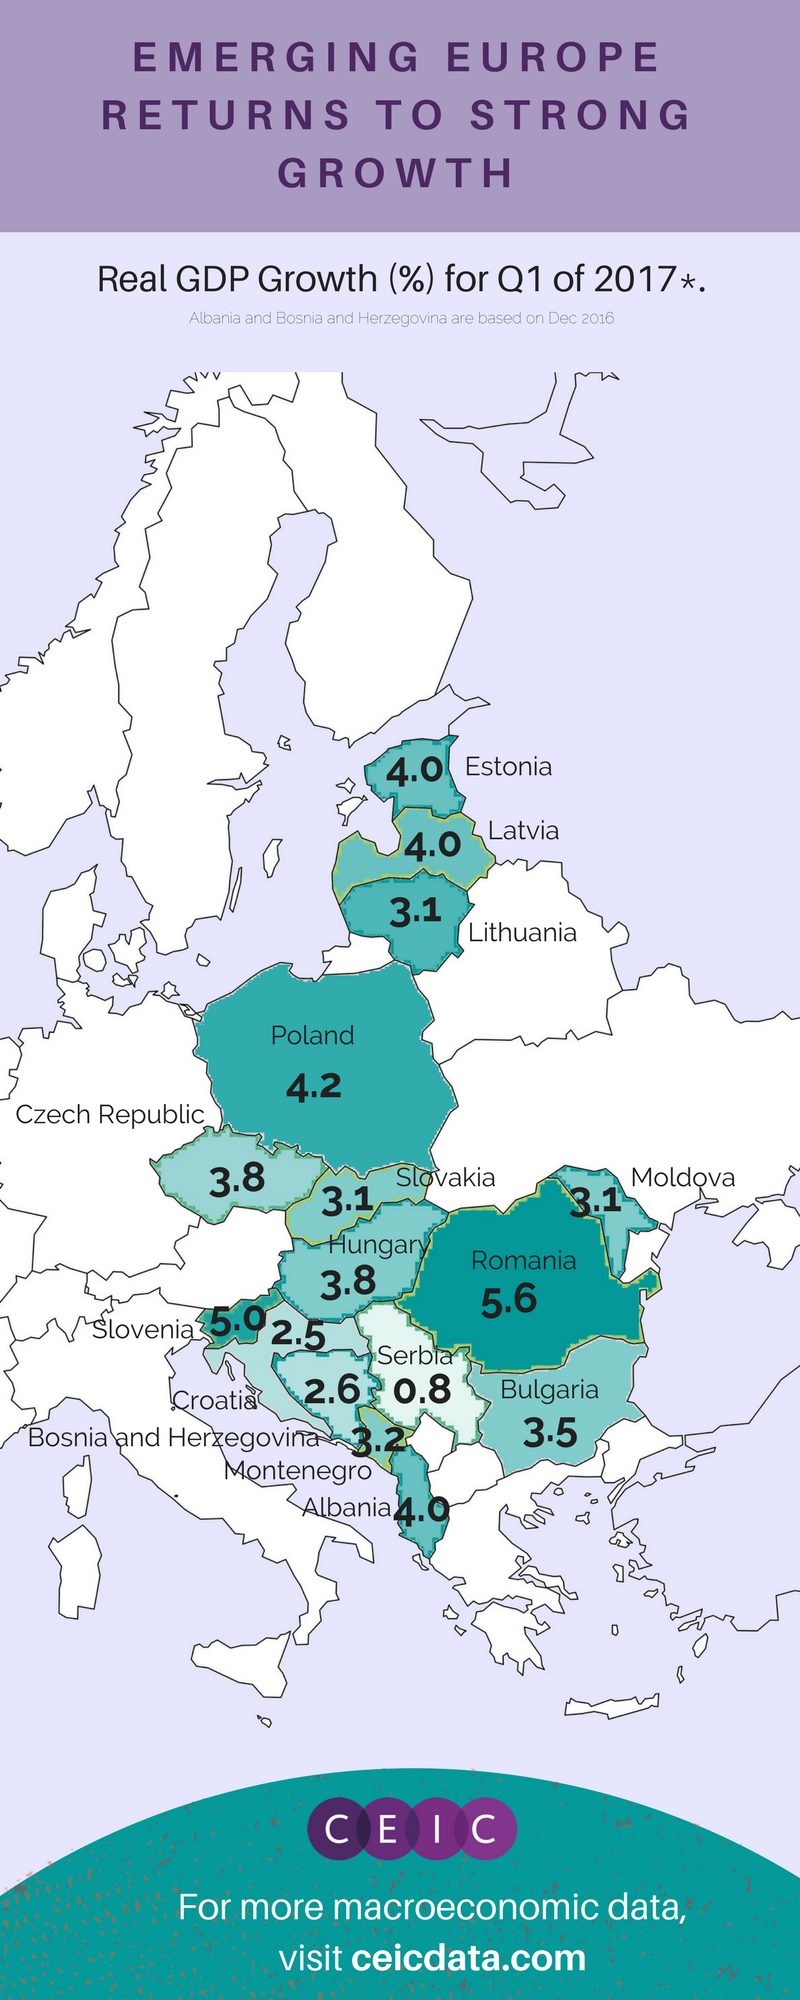 Eastern Europe Real GDP Growth